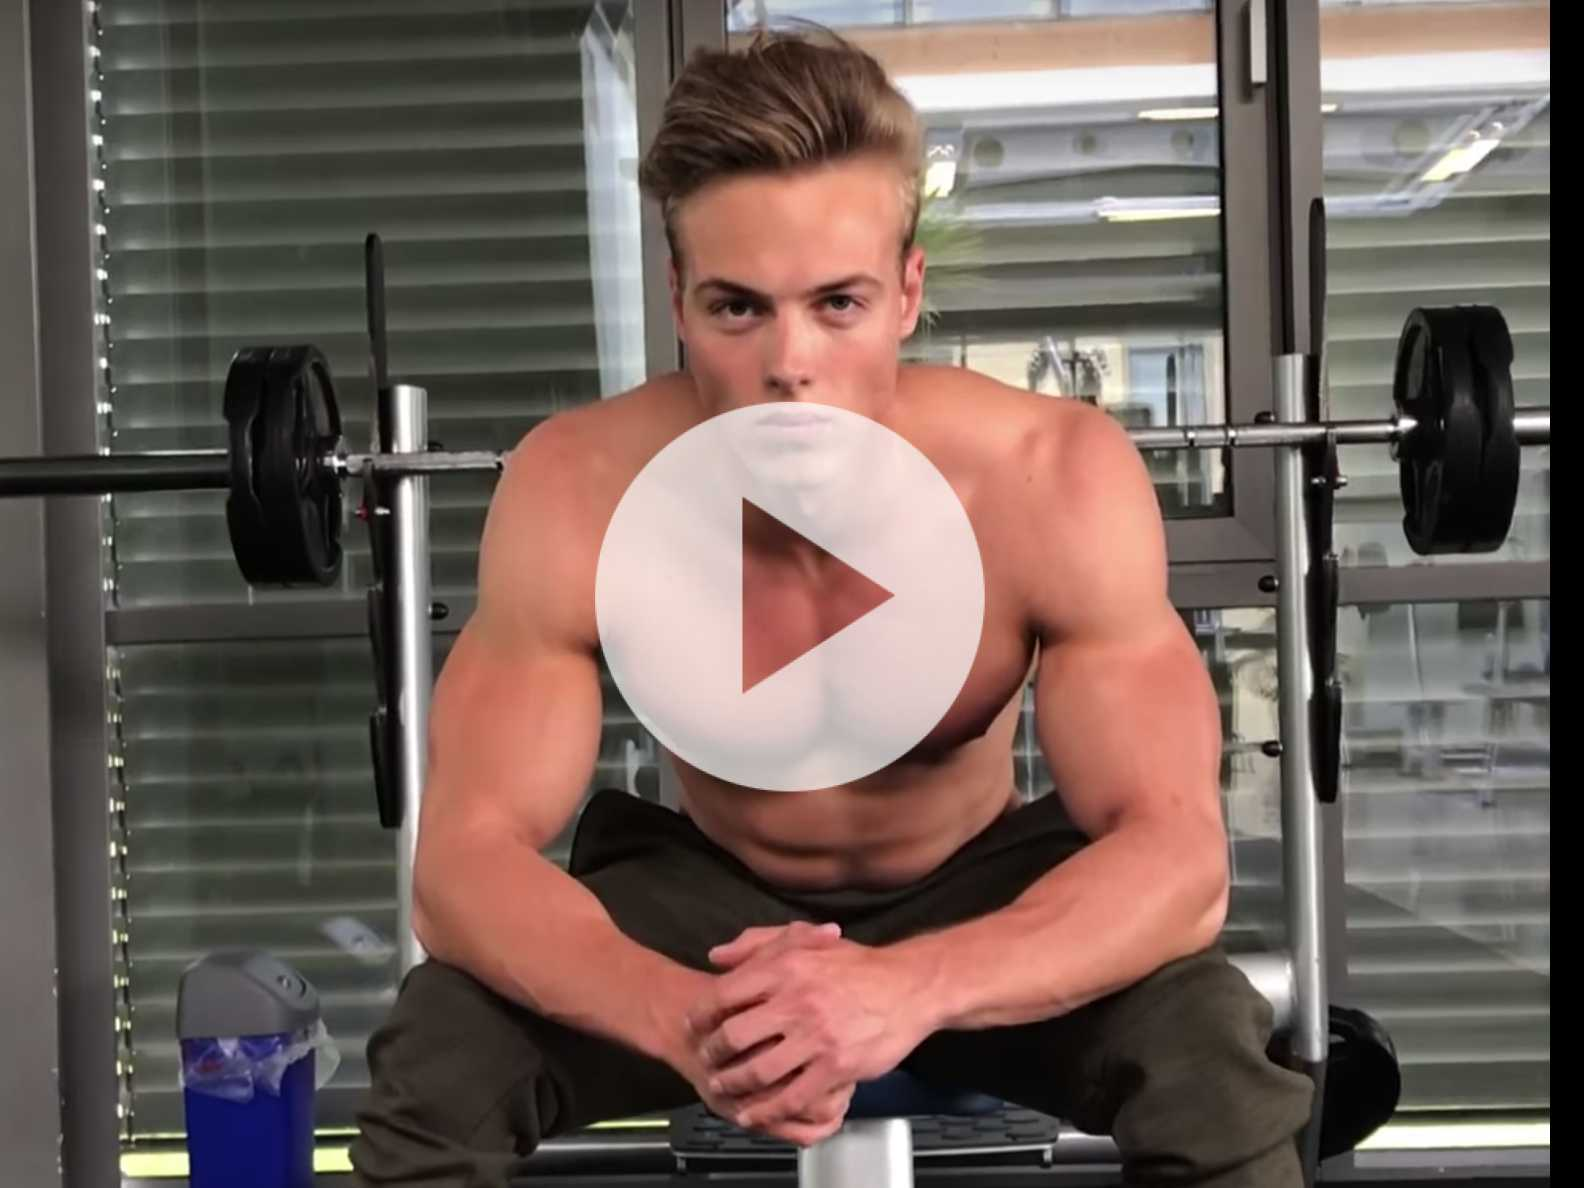 Monday Muscle: Chest Workout with Fitness Model Hagen Richter